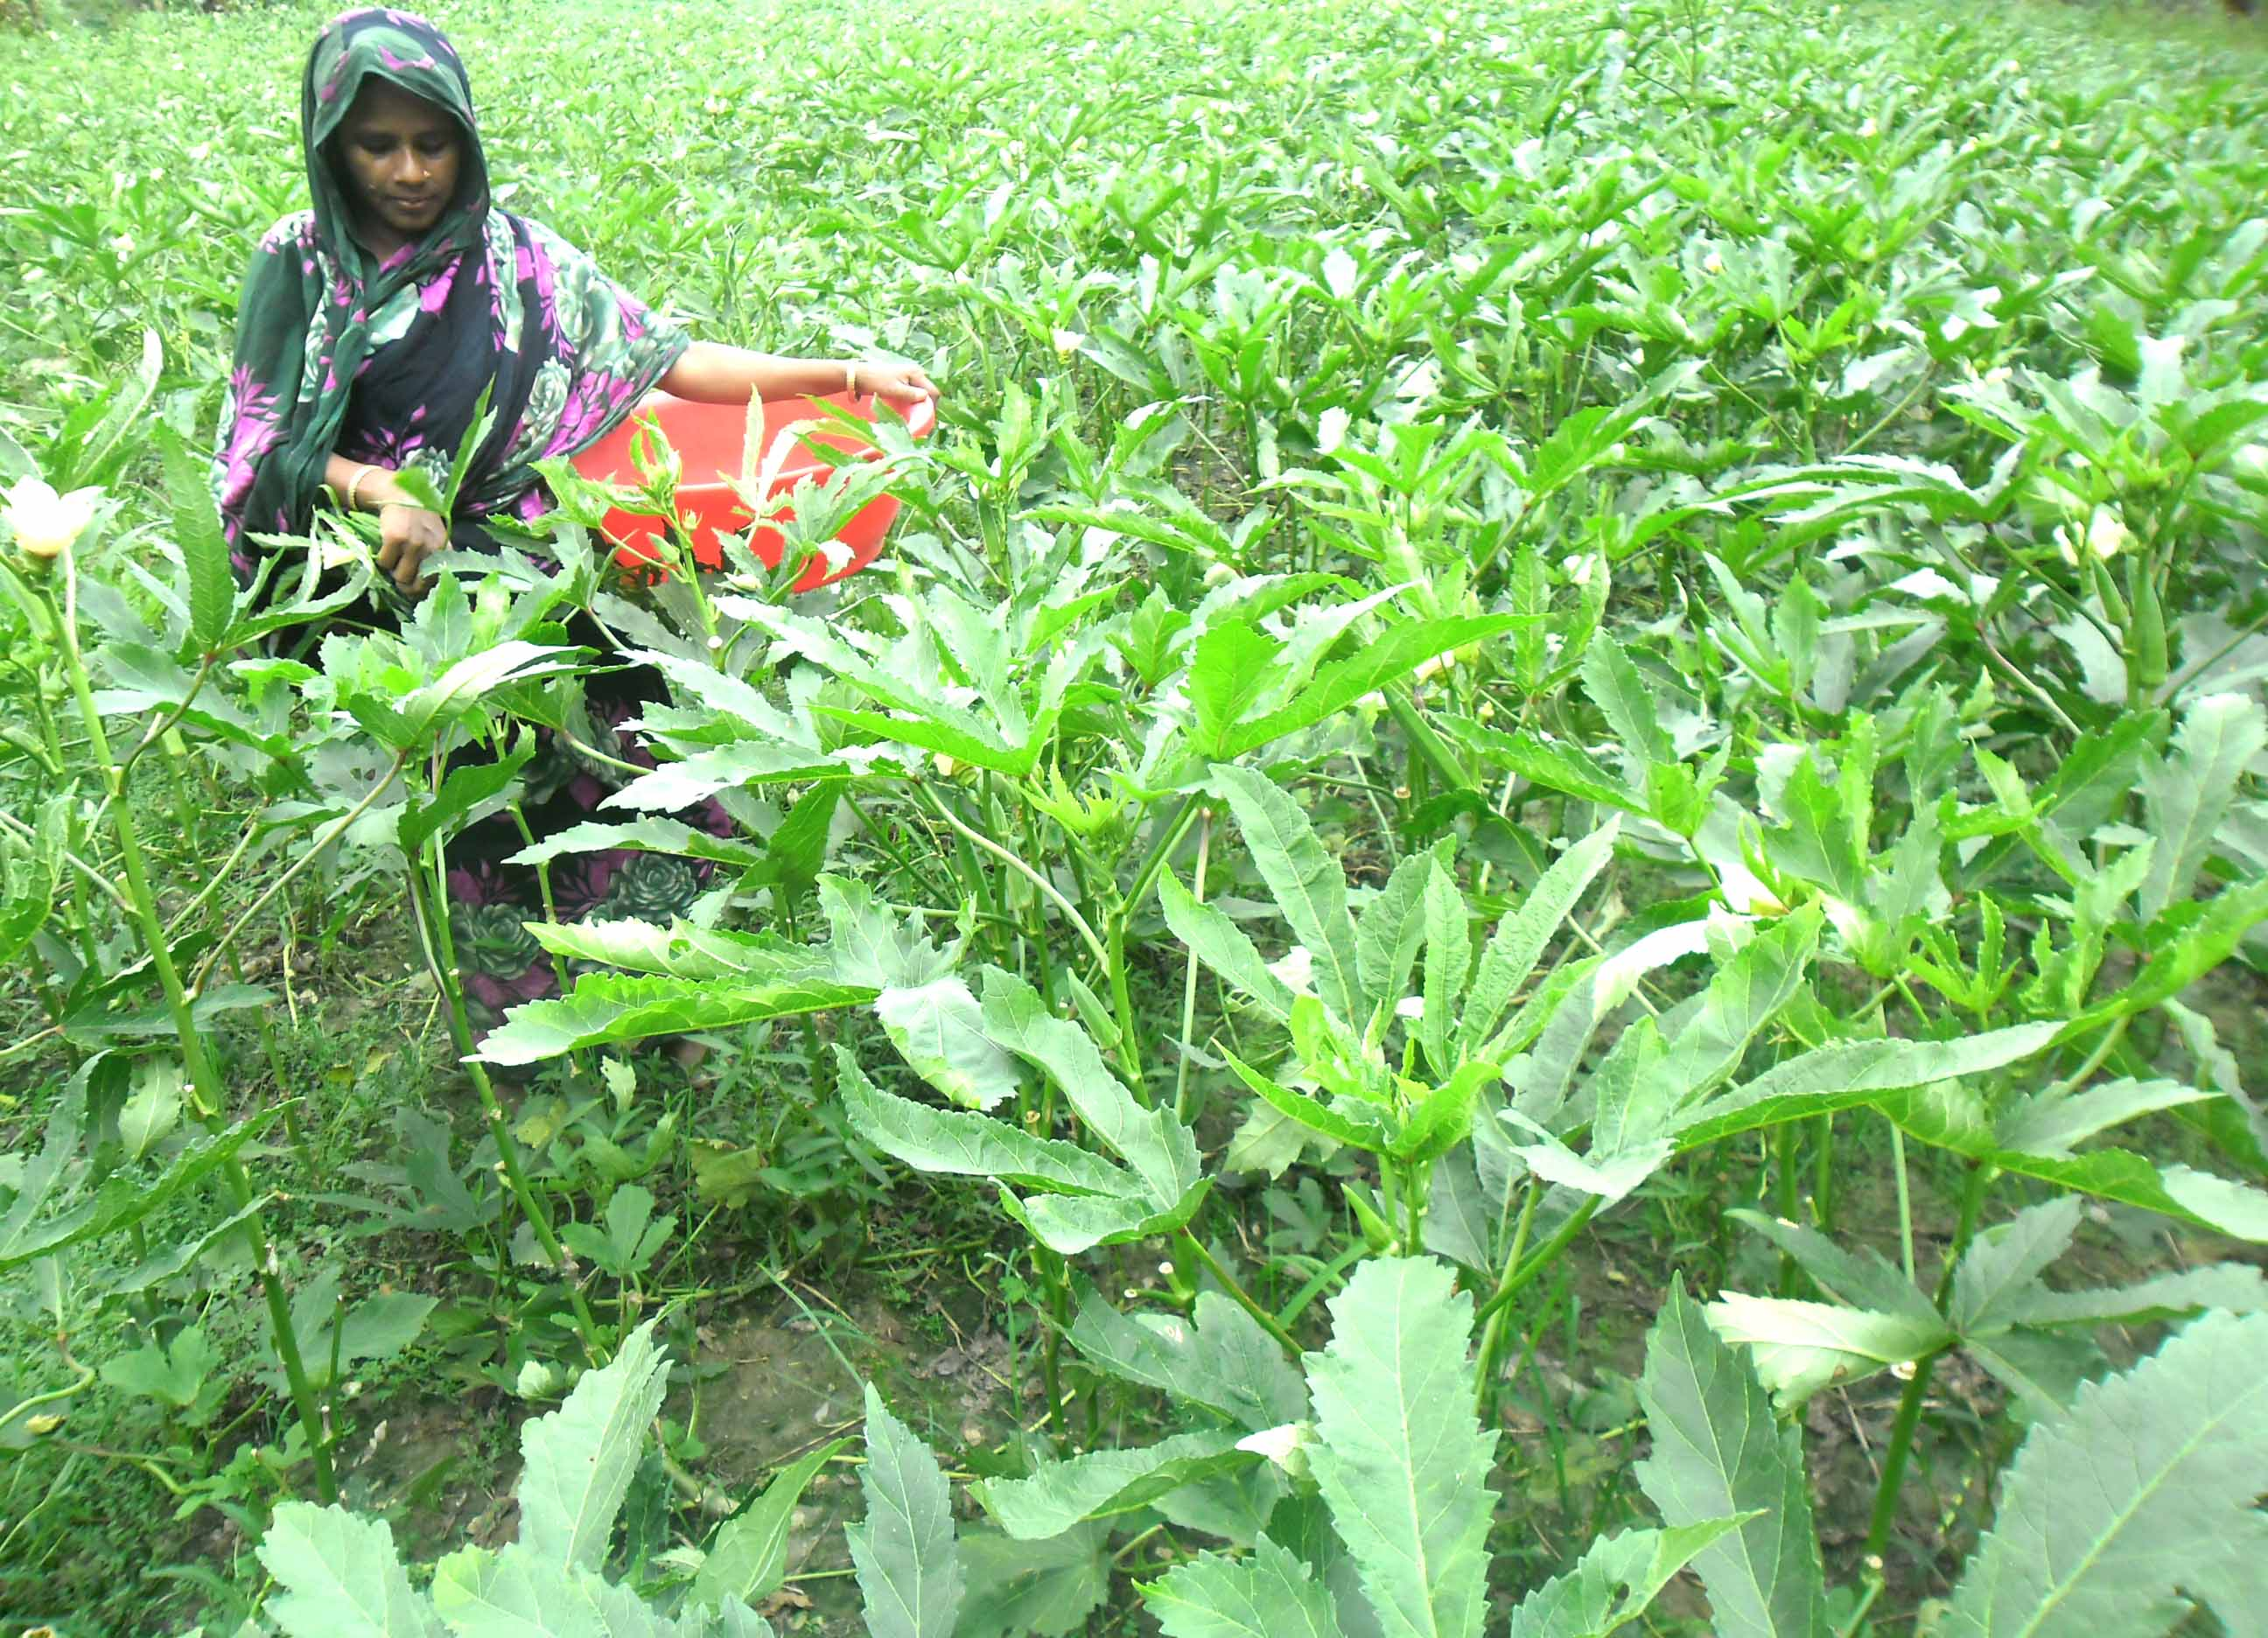 Ladies Finger Cultivation, Rawshana Begum, Kutuba W.S. Burhanuddin, Bhola